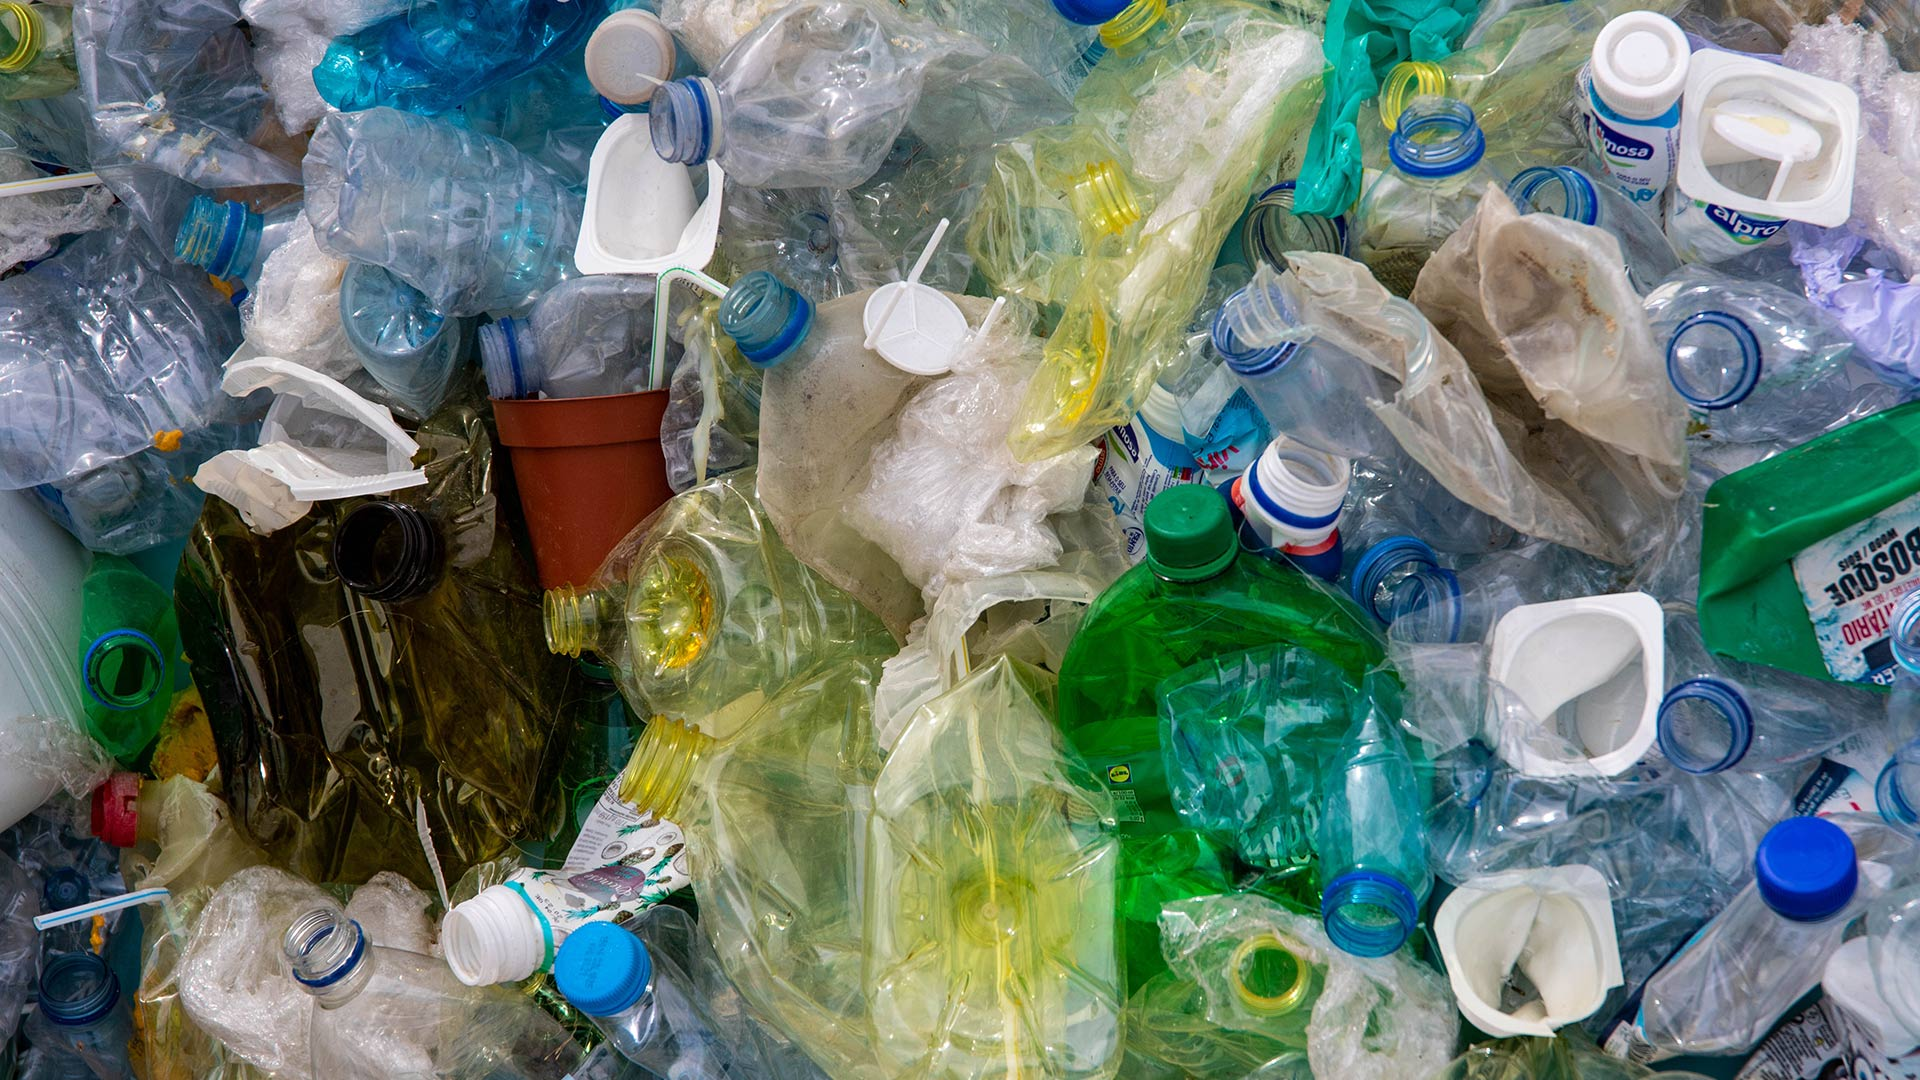 Take the Plastic Free July Challenge with Us!